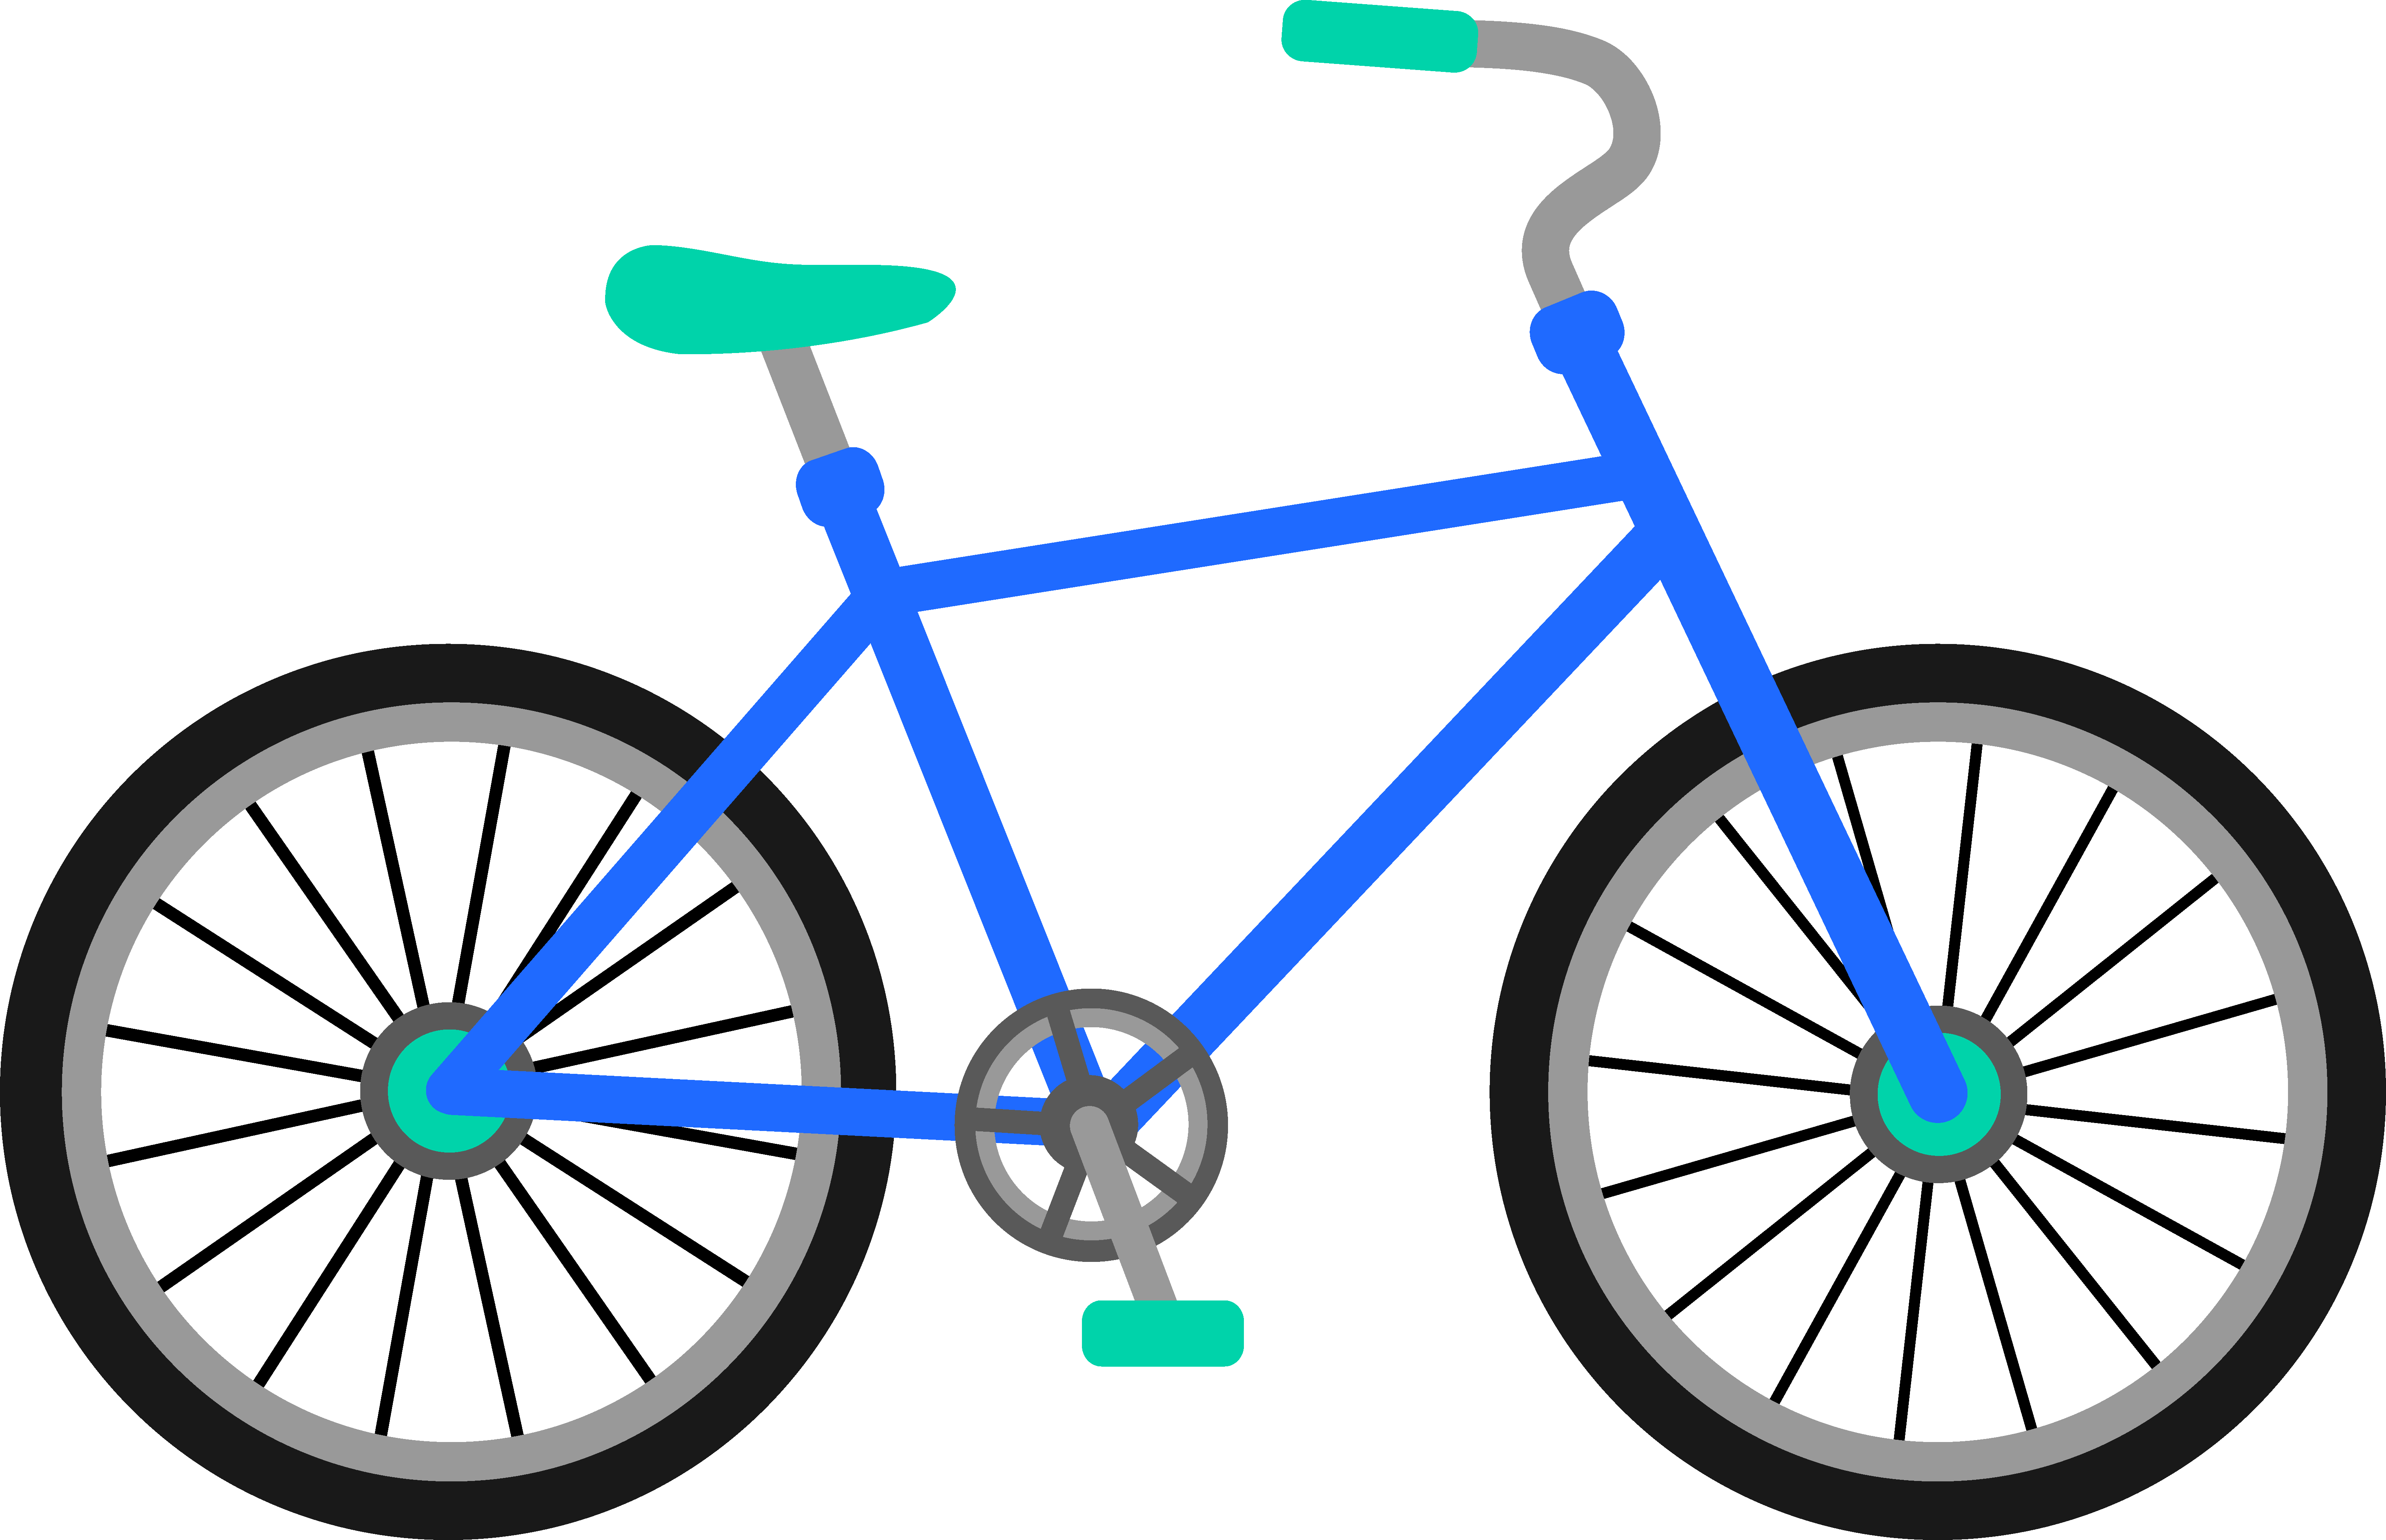 Clip Art: Transportation Bicycle Drawing Clip art.